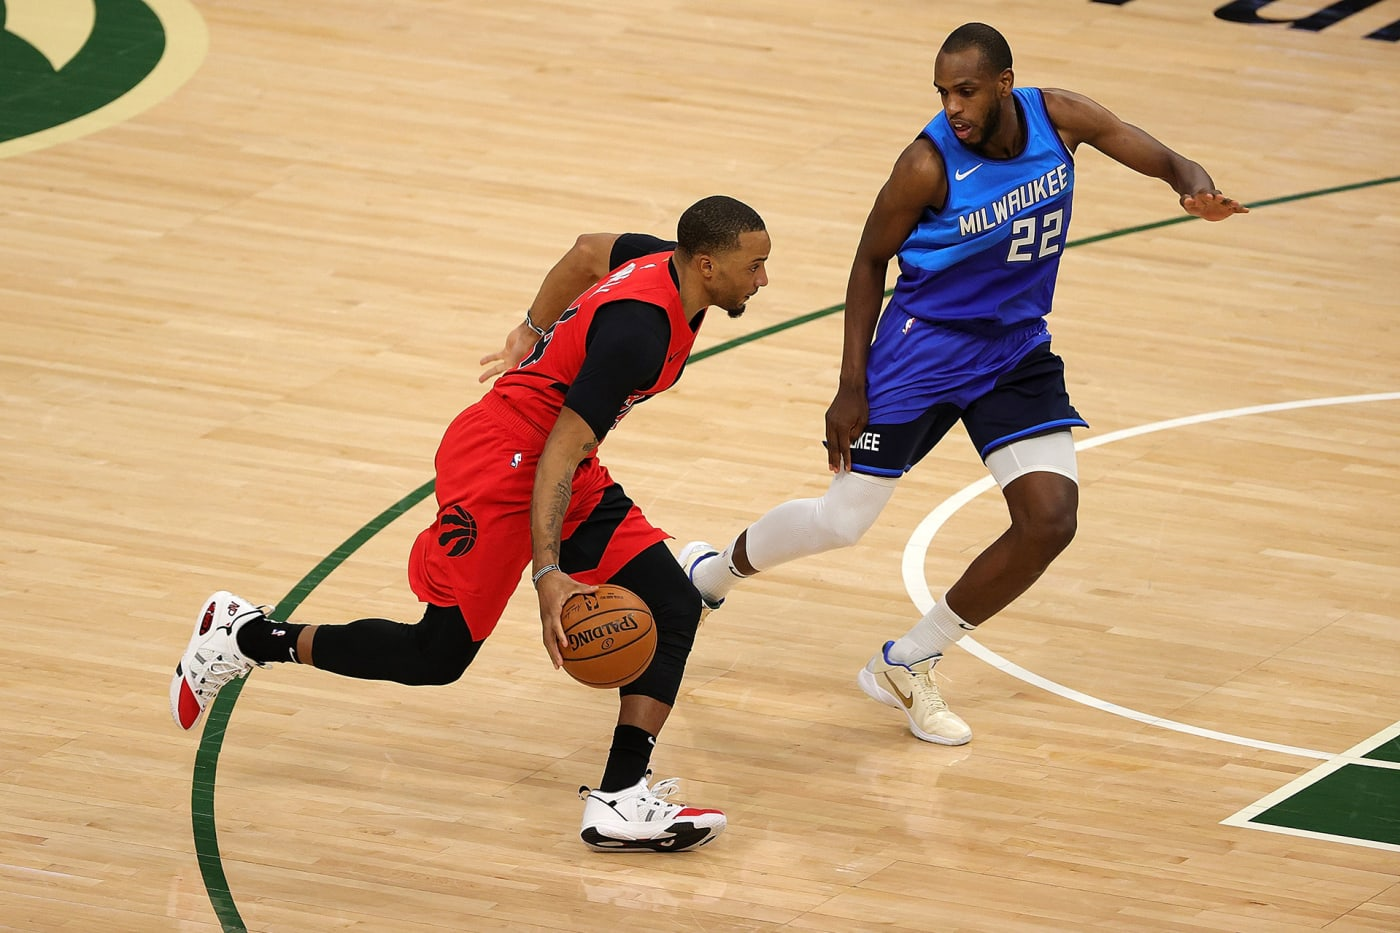 Norman Powell playing while wearing his AND1 sneakers